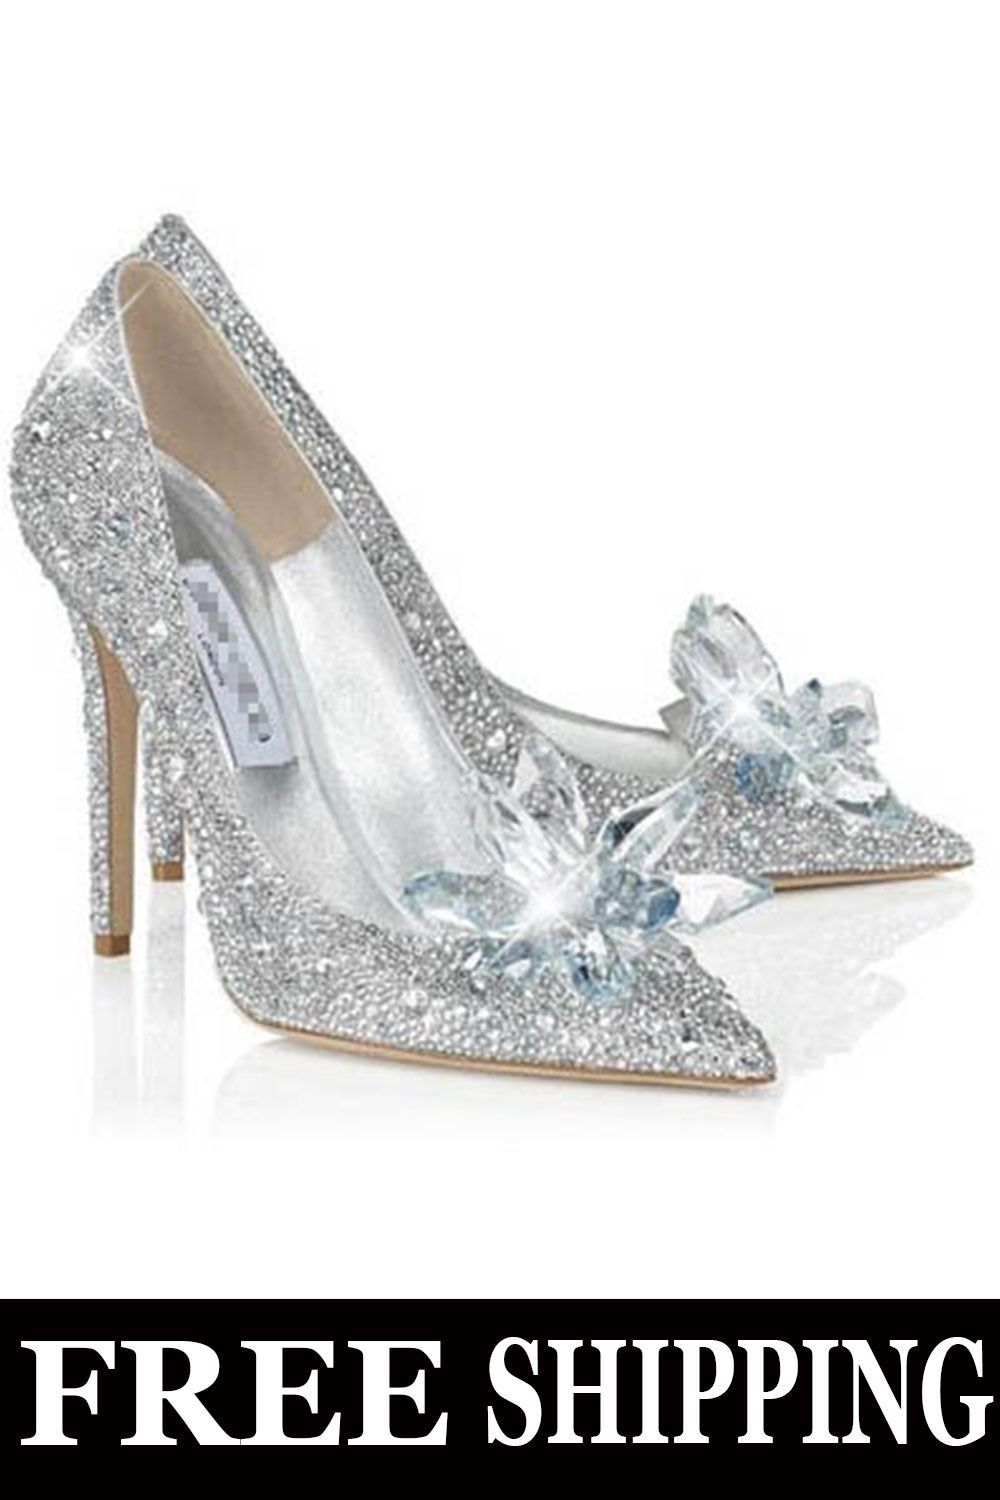 acf867add2eb Buy Shoespie Glitter Silver Charming Point Toe Crystal Cinderella Wedding  Prom Shoes From Shoespie.com.You will find many fashionable products from  Hottest ...